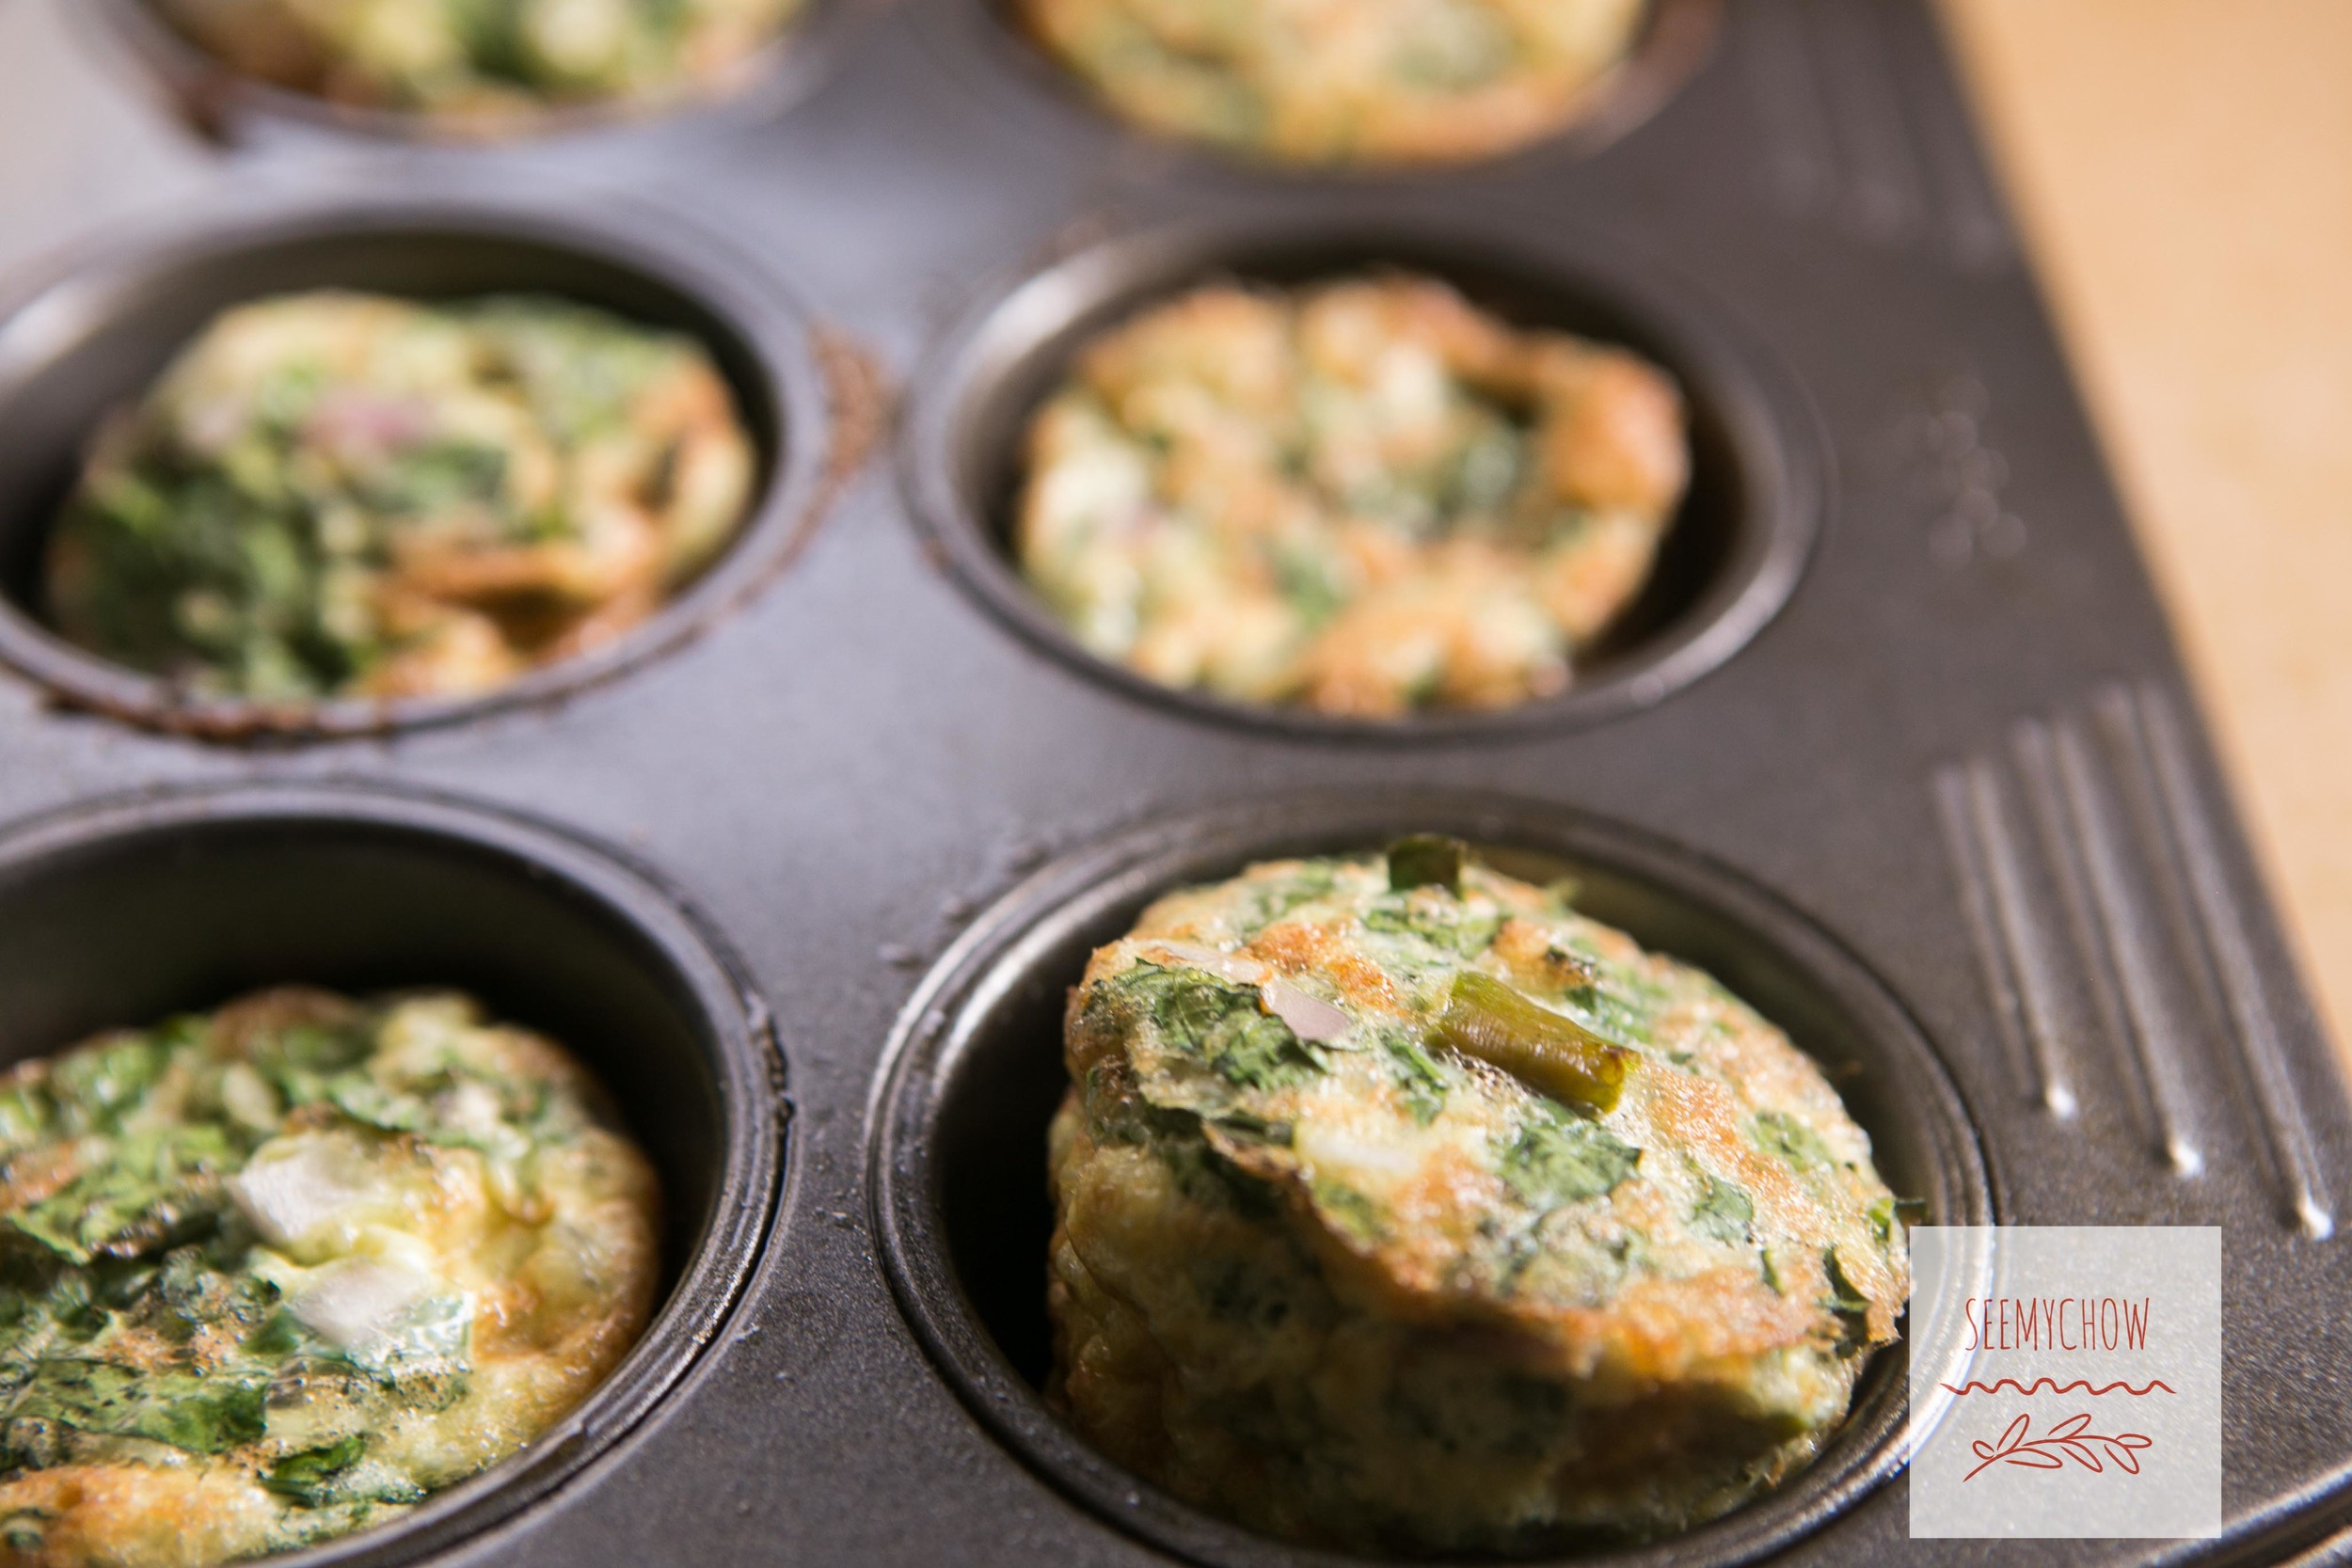 Kale & Eggs Muffins